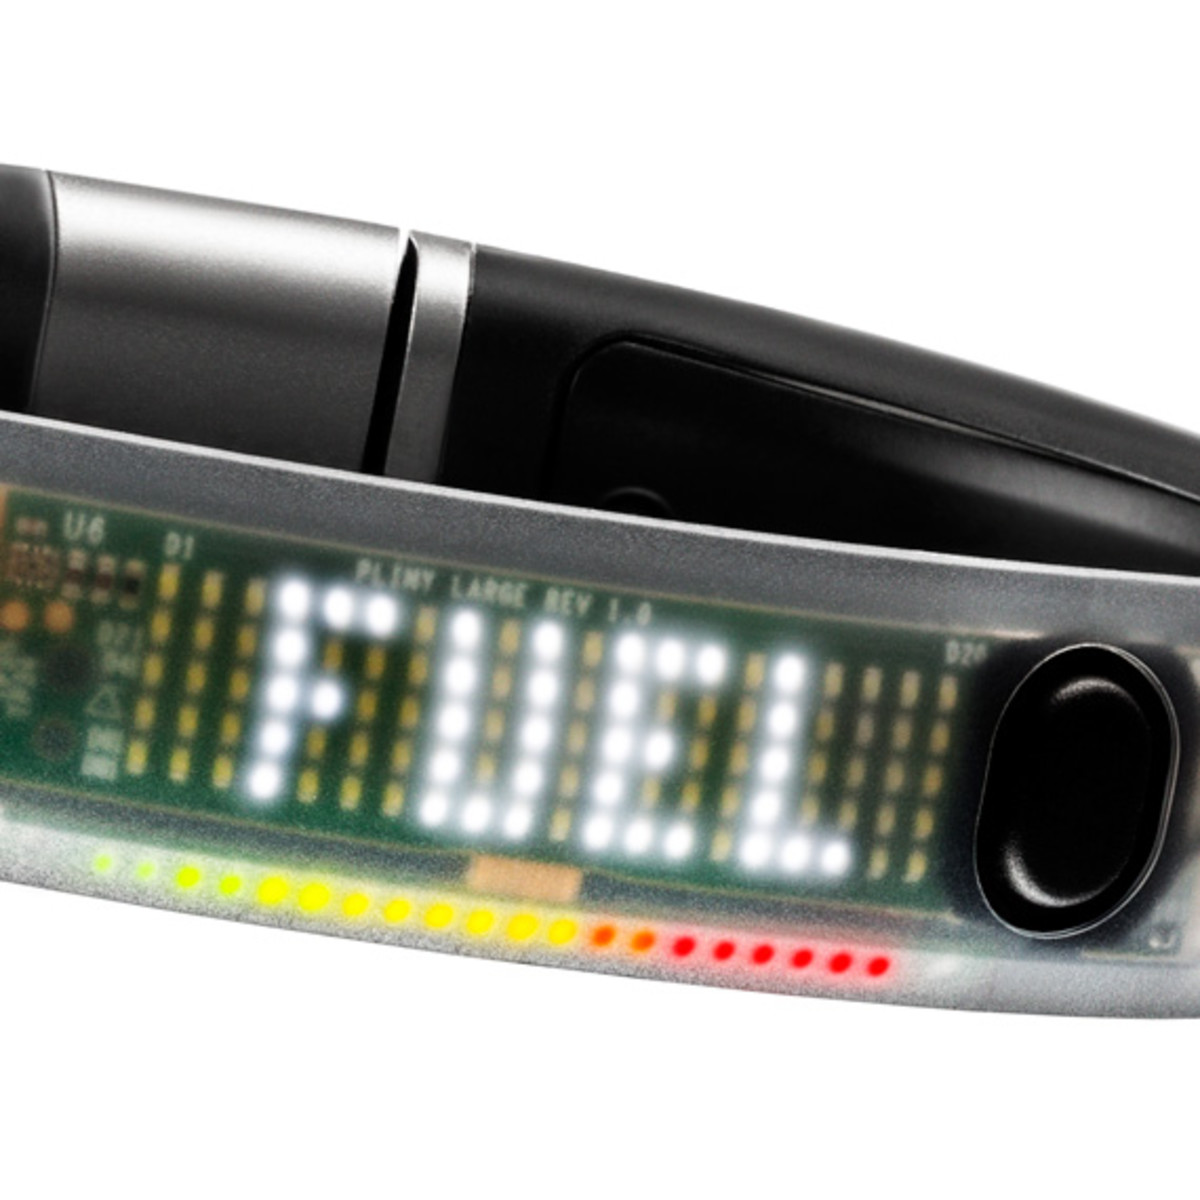 nike-plus-fuelband-ice-clear-02